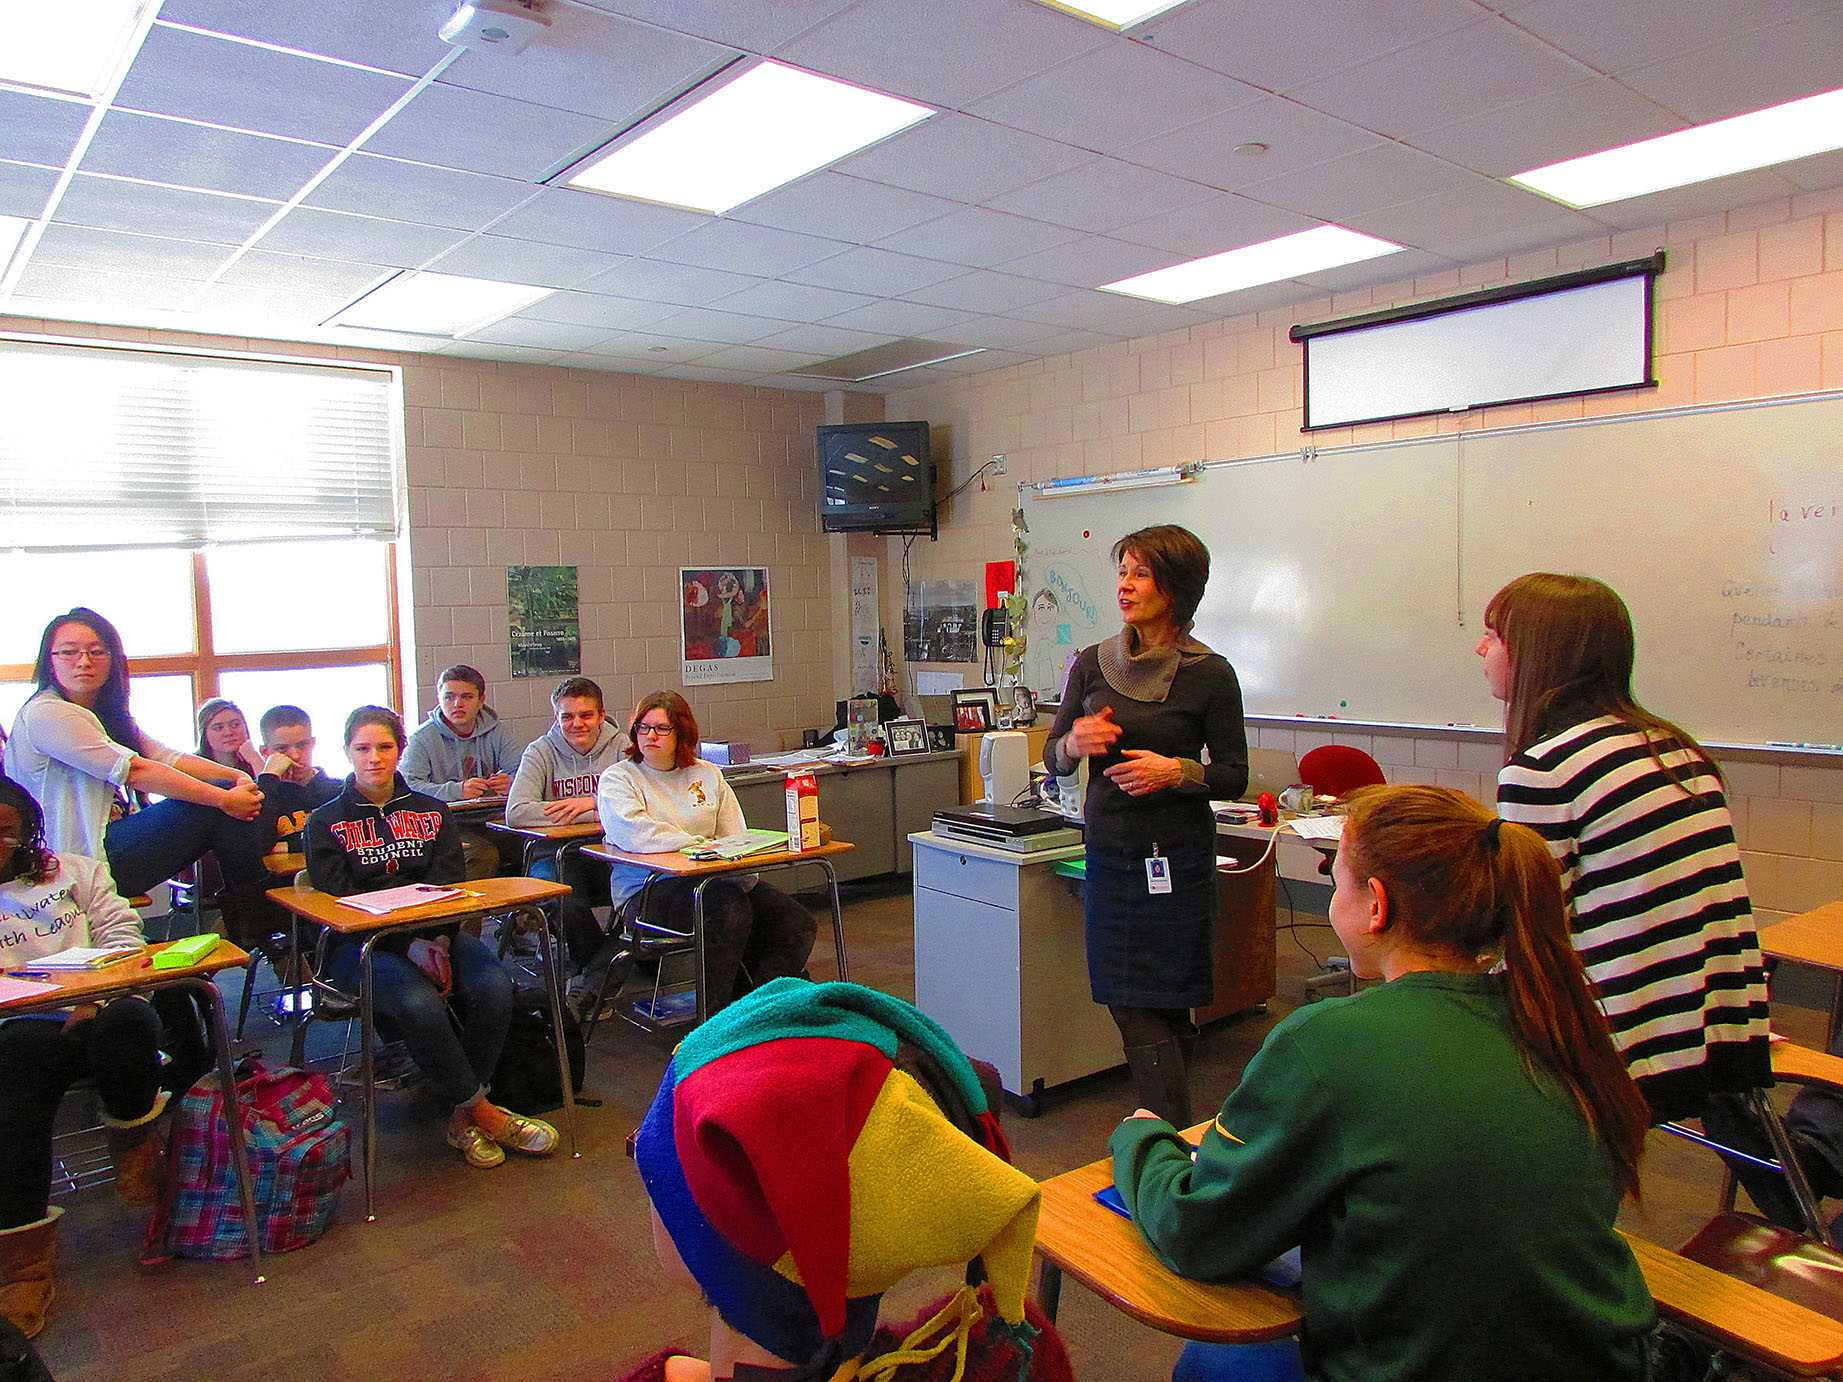 "Photo by Paul Hudachek  Kasak-Saxler teaches her students French during the day and is also a favorite of the students. ""I learned to really try hard with my French from her. I would consider her as a role model because I admire that she has kept up with French over all these years, and I want to do the same,"" said senior Chandler Stormo."